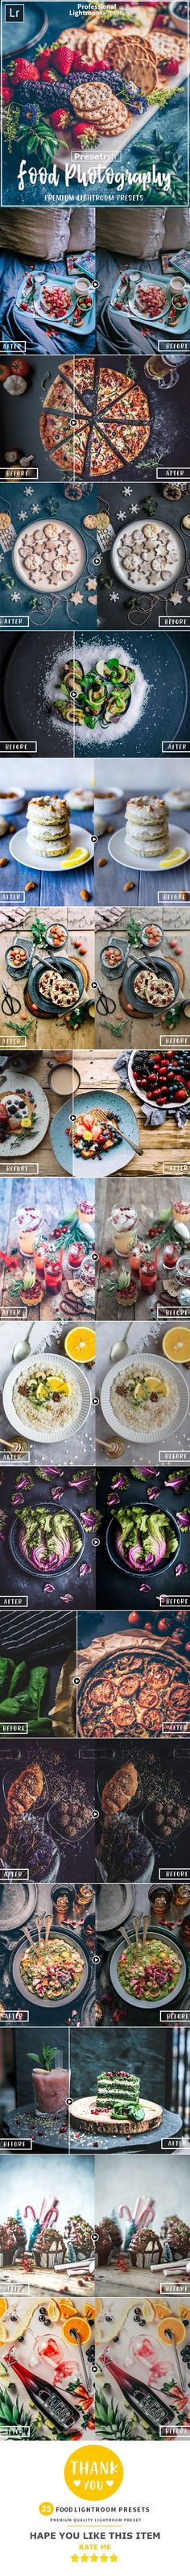 25 Food Collection Lightroom Presets — LRTemplate #retouching #photographer Lightroom Presets Wedding, Professional Lightroom Presets, Black And White Landscape, Tumblr, Photo Effects, Photoshop Tutorial, Photography Tips, Photo Editing, Graphic Design